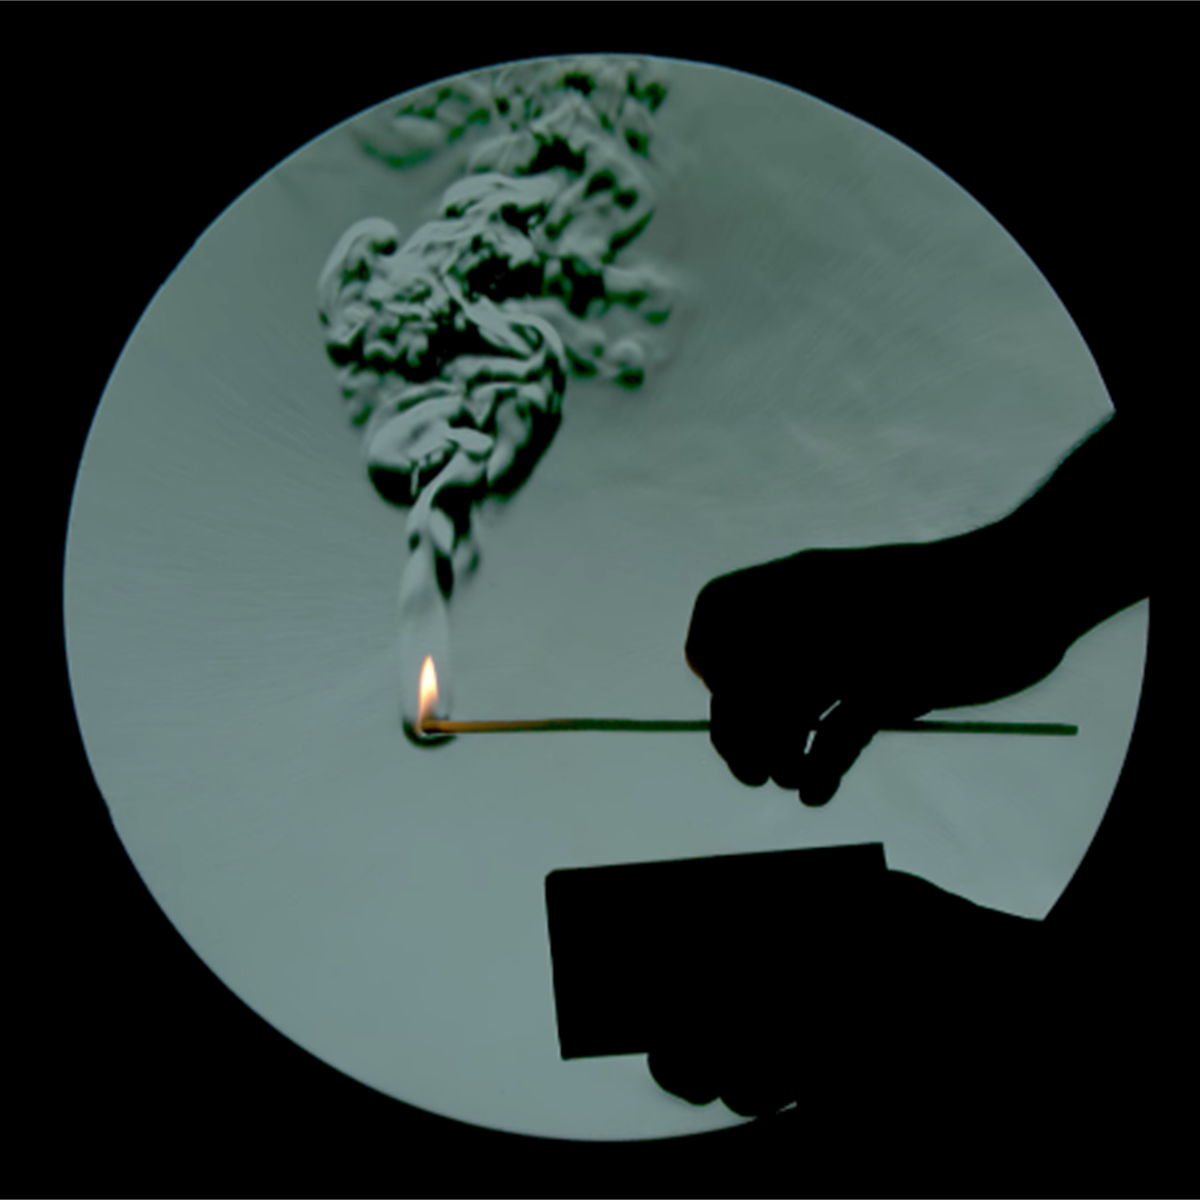 Image result for shadow of candle smoke, schlieren